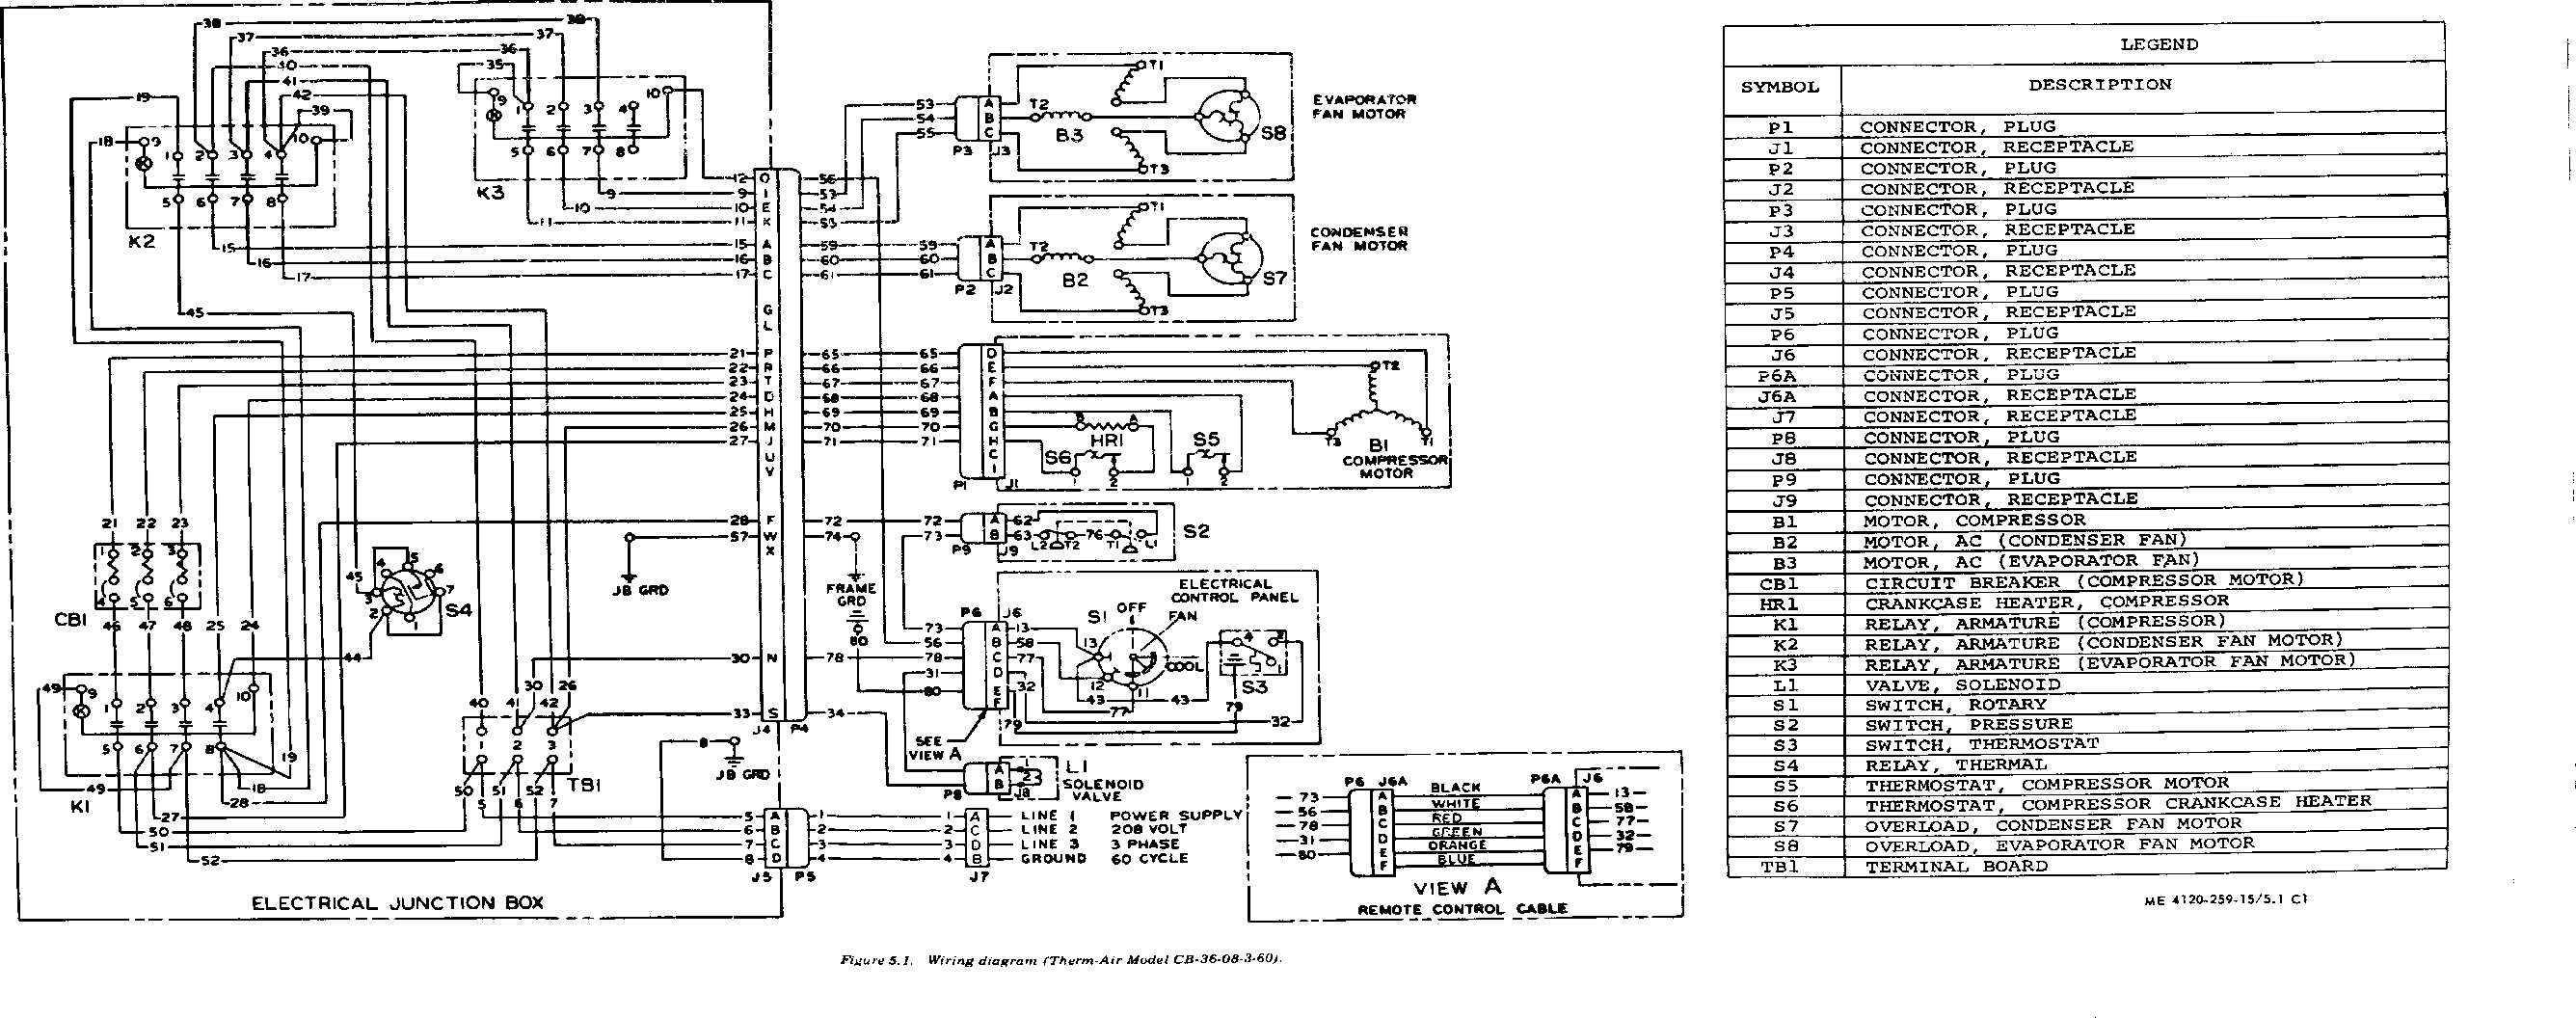 [DIAGRAM_5LK]  ✦DIAGRAM BASED✦ Trane Precedent Rtu Wiring Manual COMPLETED DIAGRAM BASE  Wiring Manual - CATHERINE.LOUIS.KIDNEYDIAGRAM.PCINFORMI.IT | Aaon Rooftop Units Wiring Diagram |  | Diagram Based Completed Edition - PcInformi